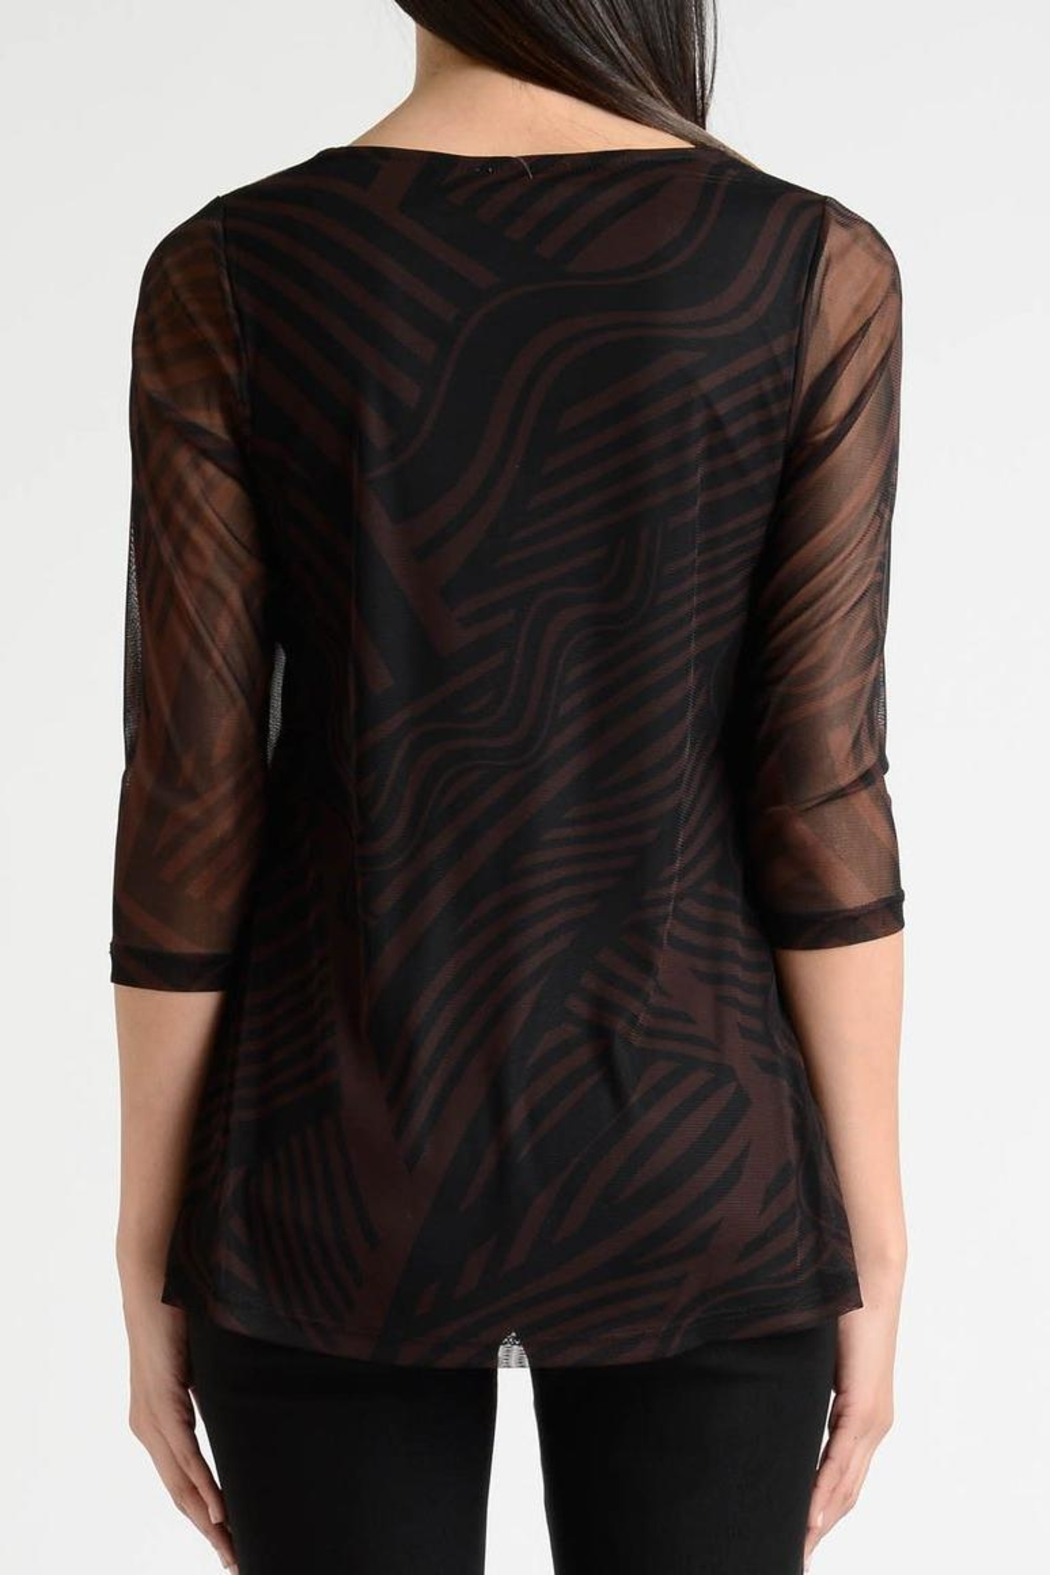 Lynn Ritchie Stripe Flare Top - Front Full Image